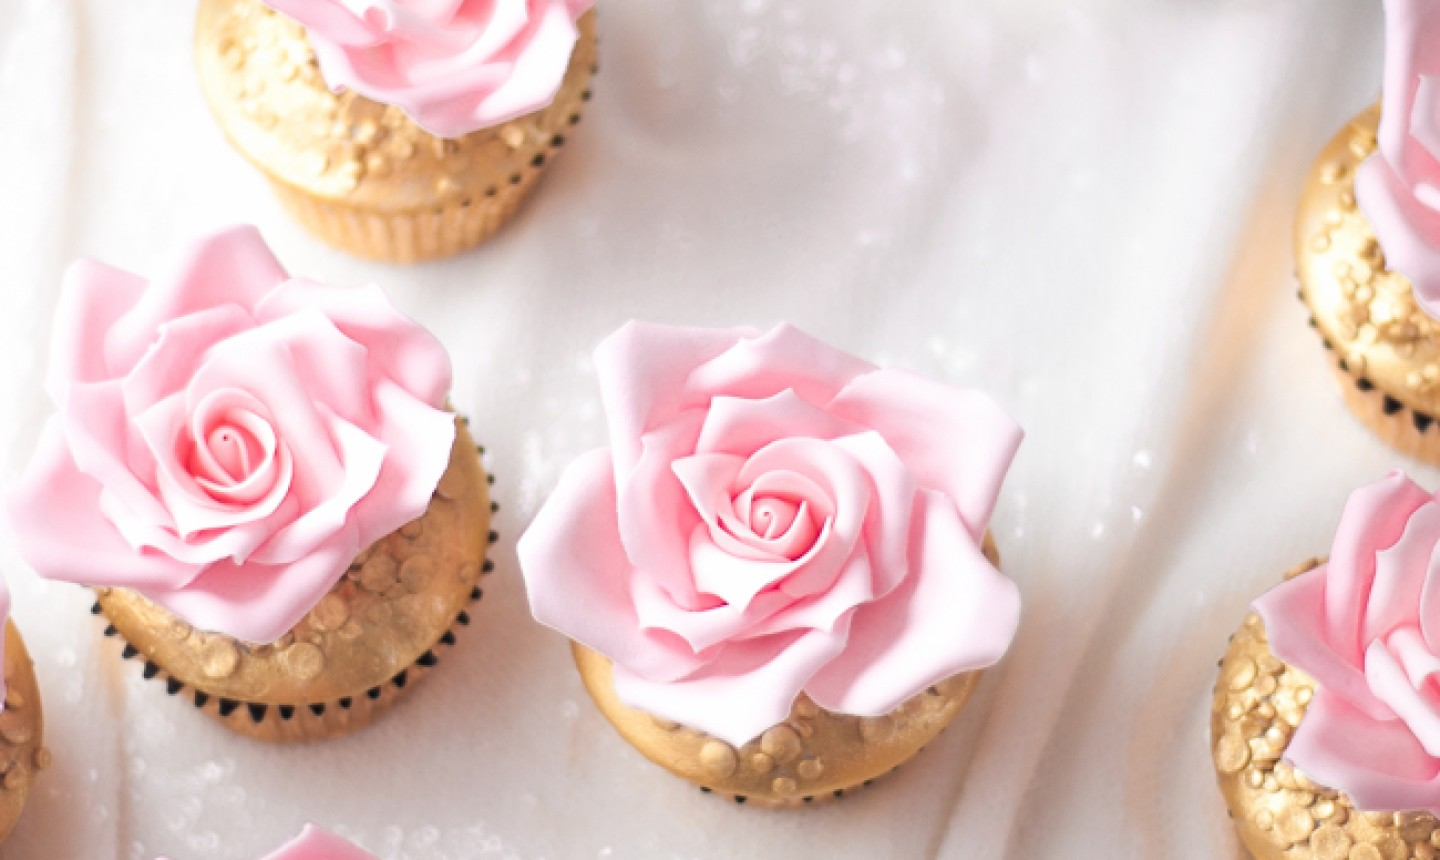 cupcakes with pink rose frosting